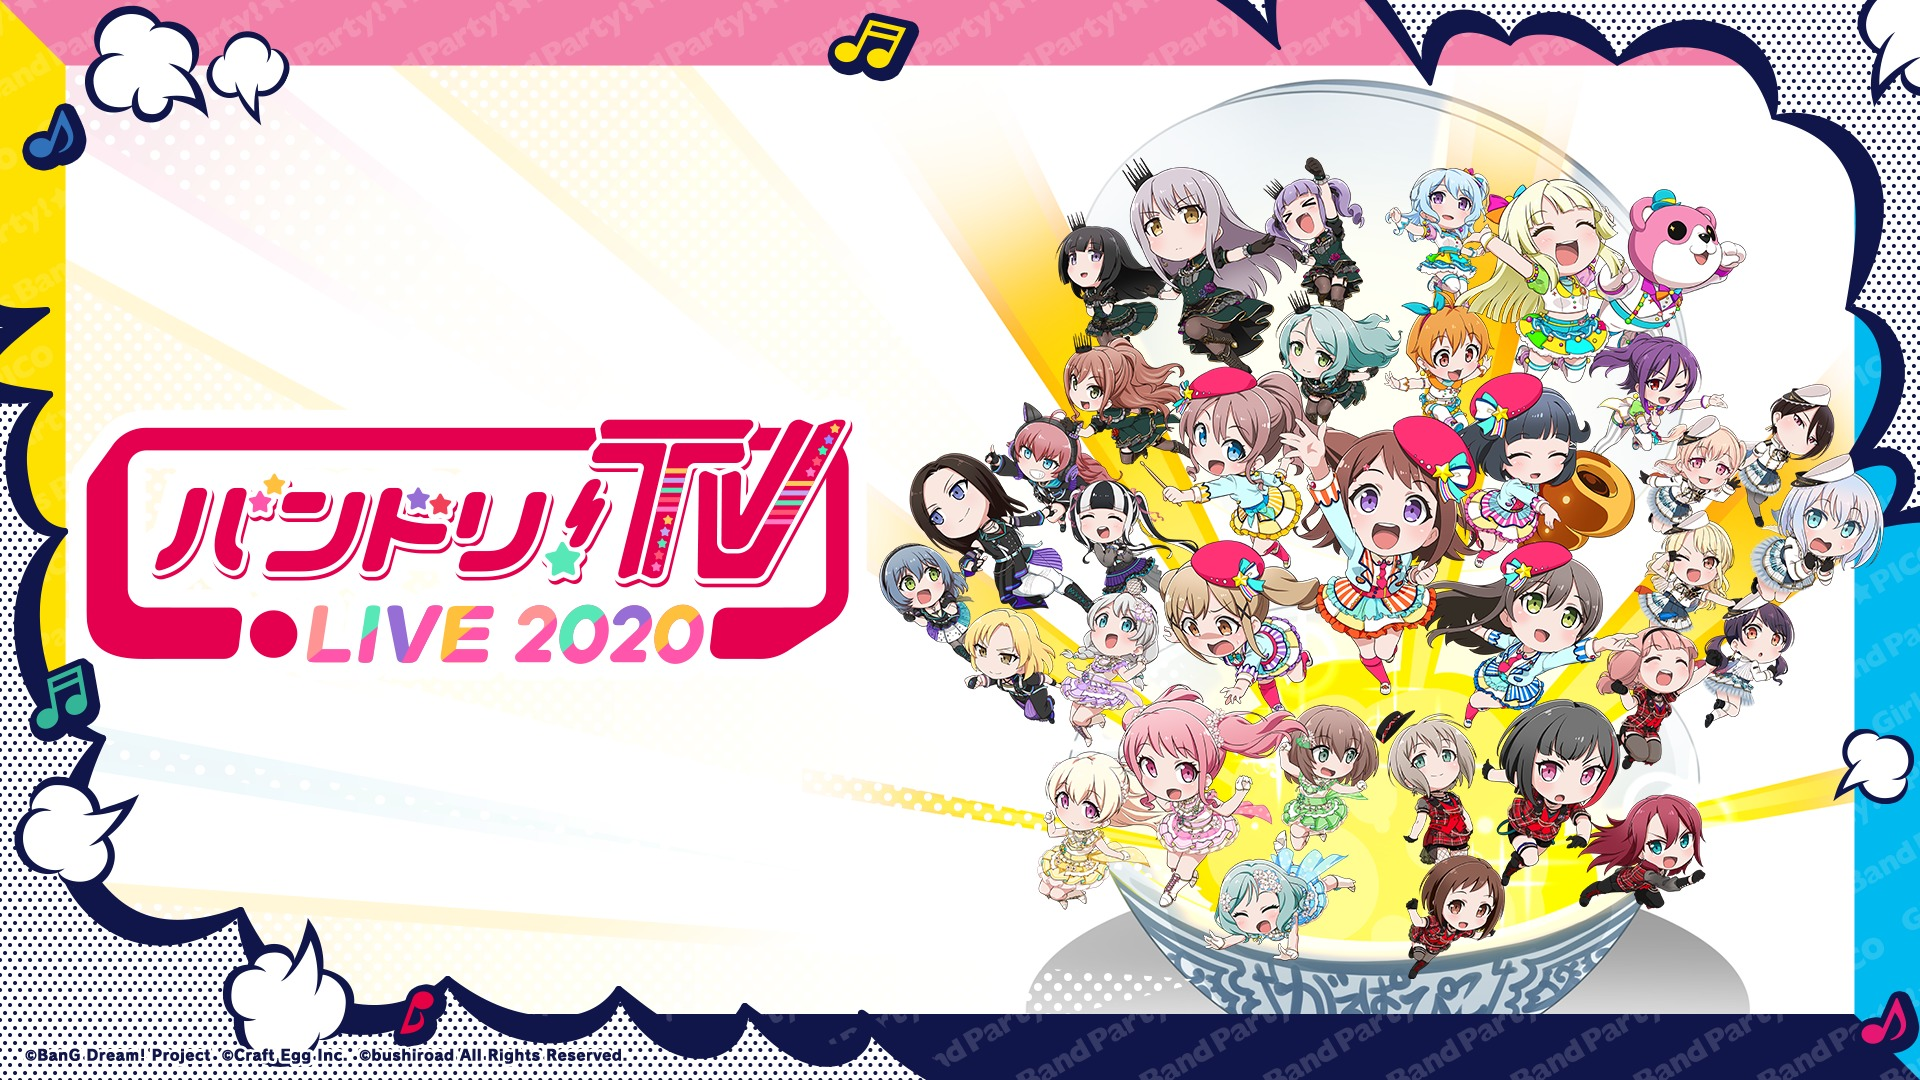 「バンドリ!TV LIVE 2020」 (C)BanG Dream! Project (C)Craft Egg Inc. (C)bushiroad All Rights Reserved.